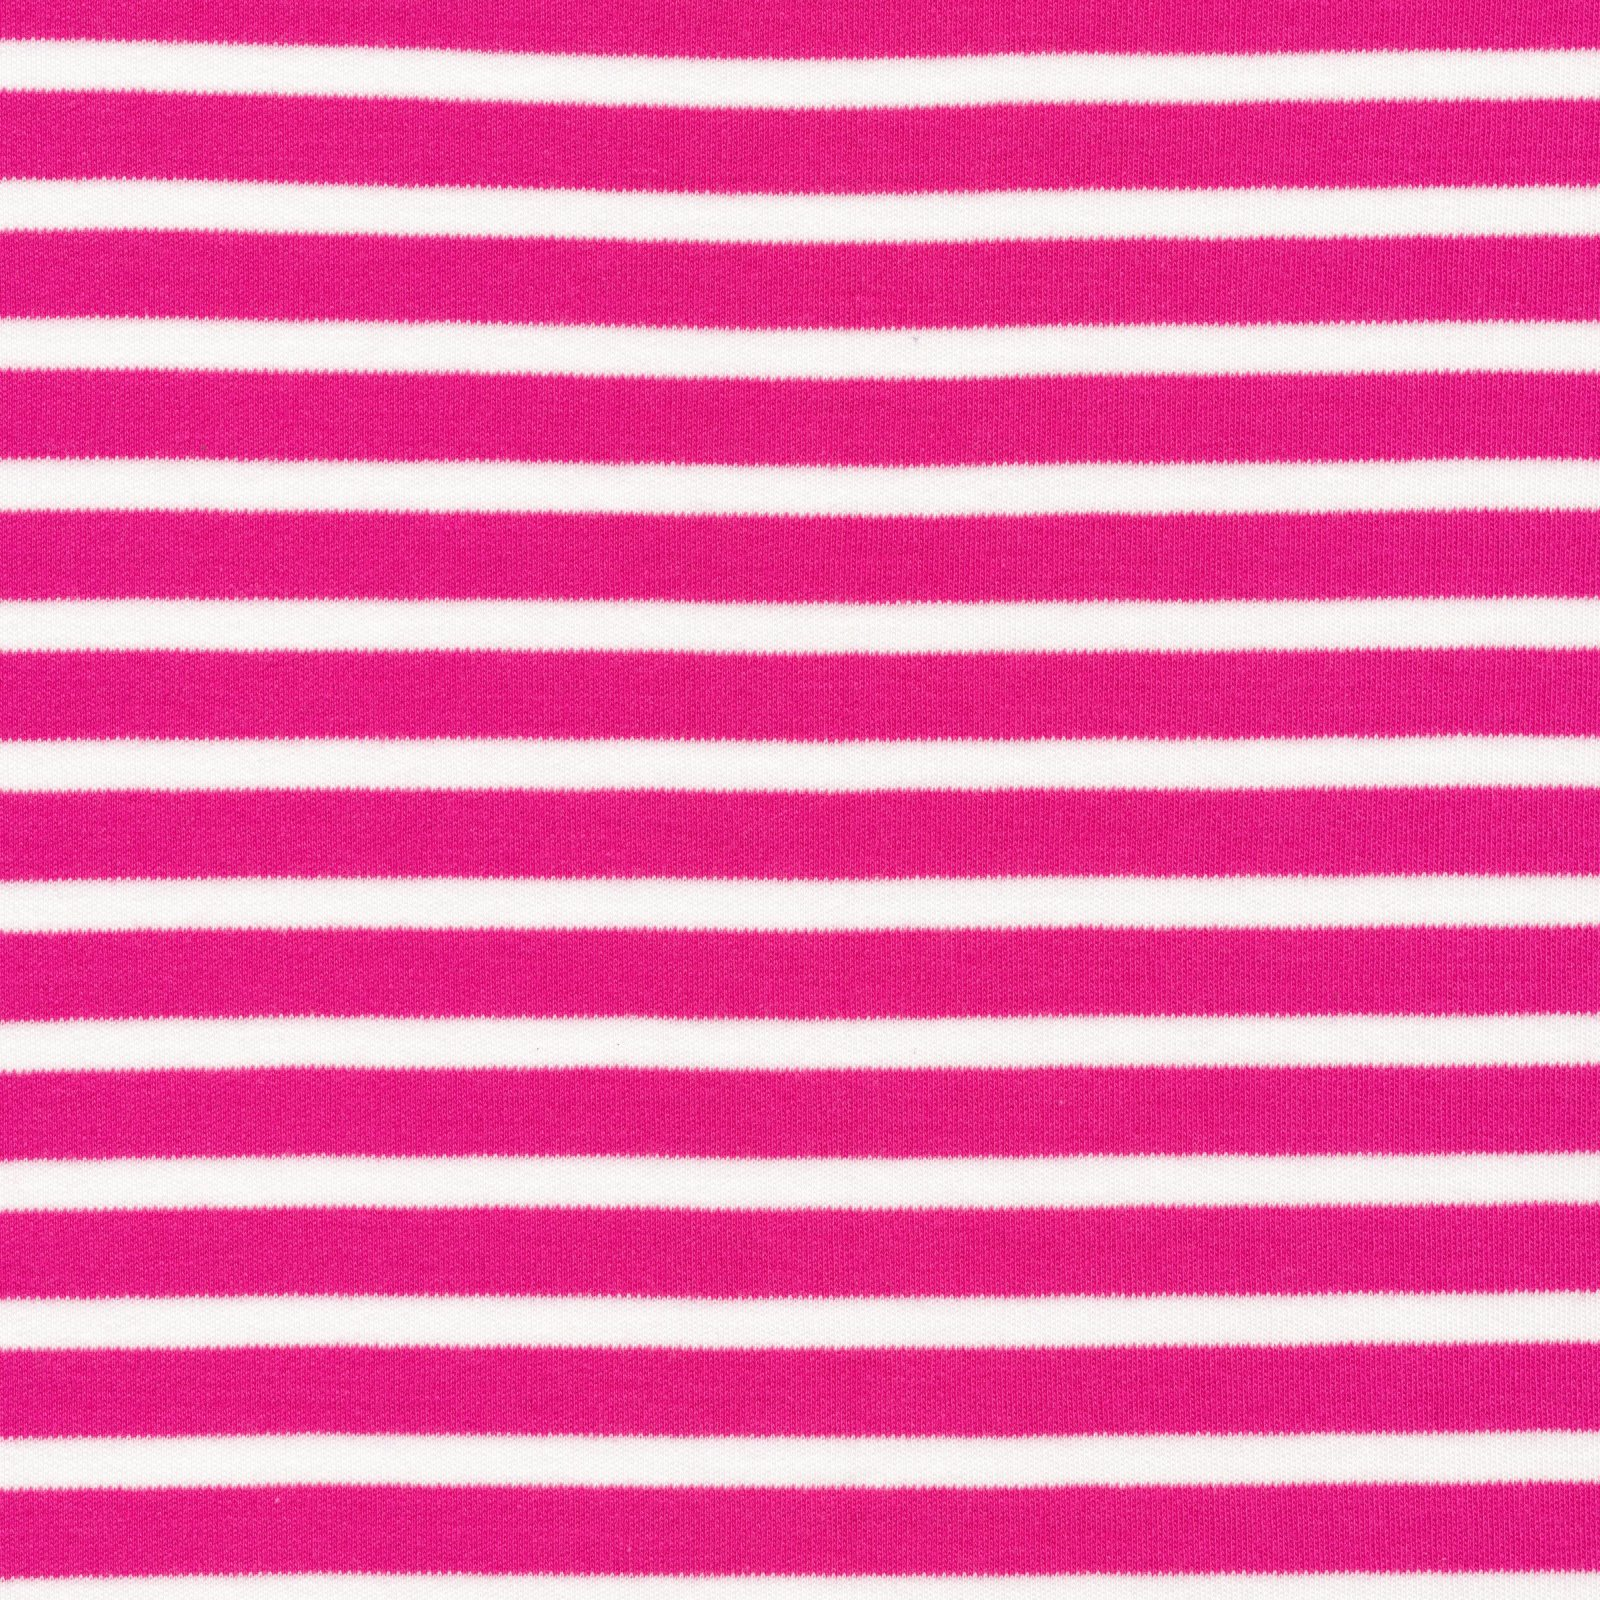 Cloud 9 - Organic Cotton Knit - Colorful Stripes - Pink